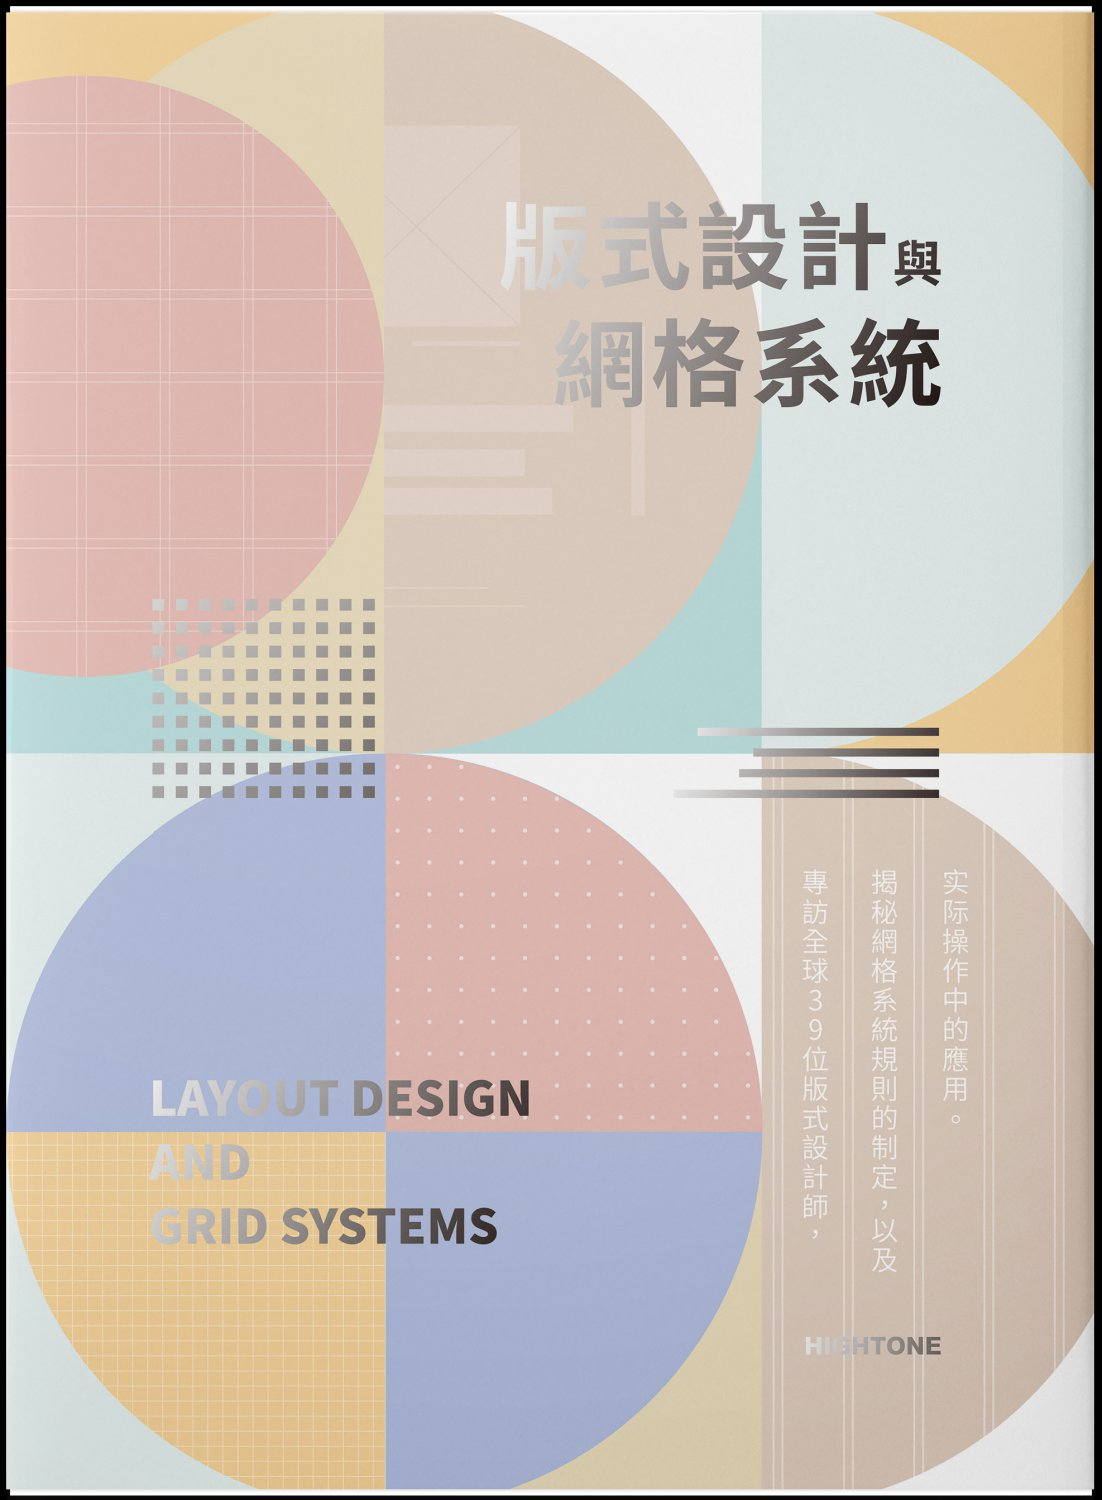 Layout Design and Grid Systems